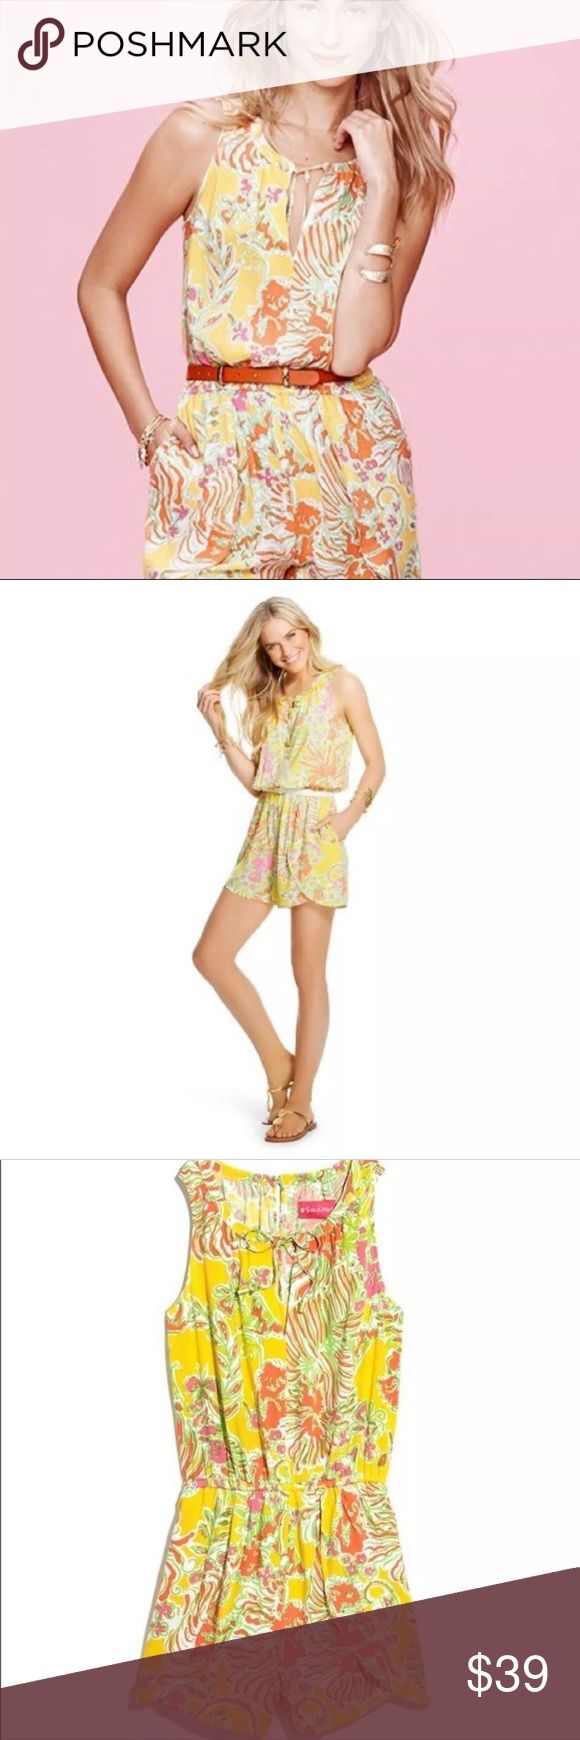 Lilly Pulitzer for Target Romper In excellent used condition, only worn twice. Size large Lilly Pulitzer for Target Romper. I bought this online, but sadly it isn't the correct size for me, so I'm hoping to find it a new home. Lilly Pulitzer for Target Dresses